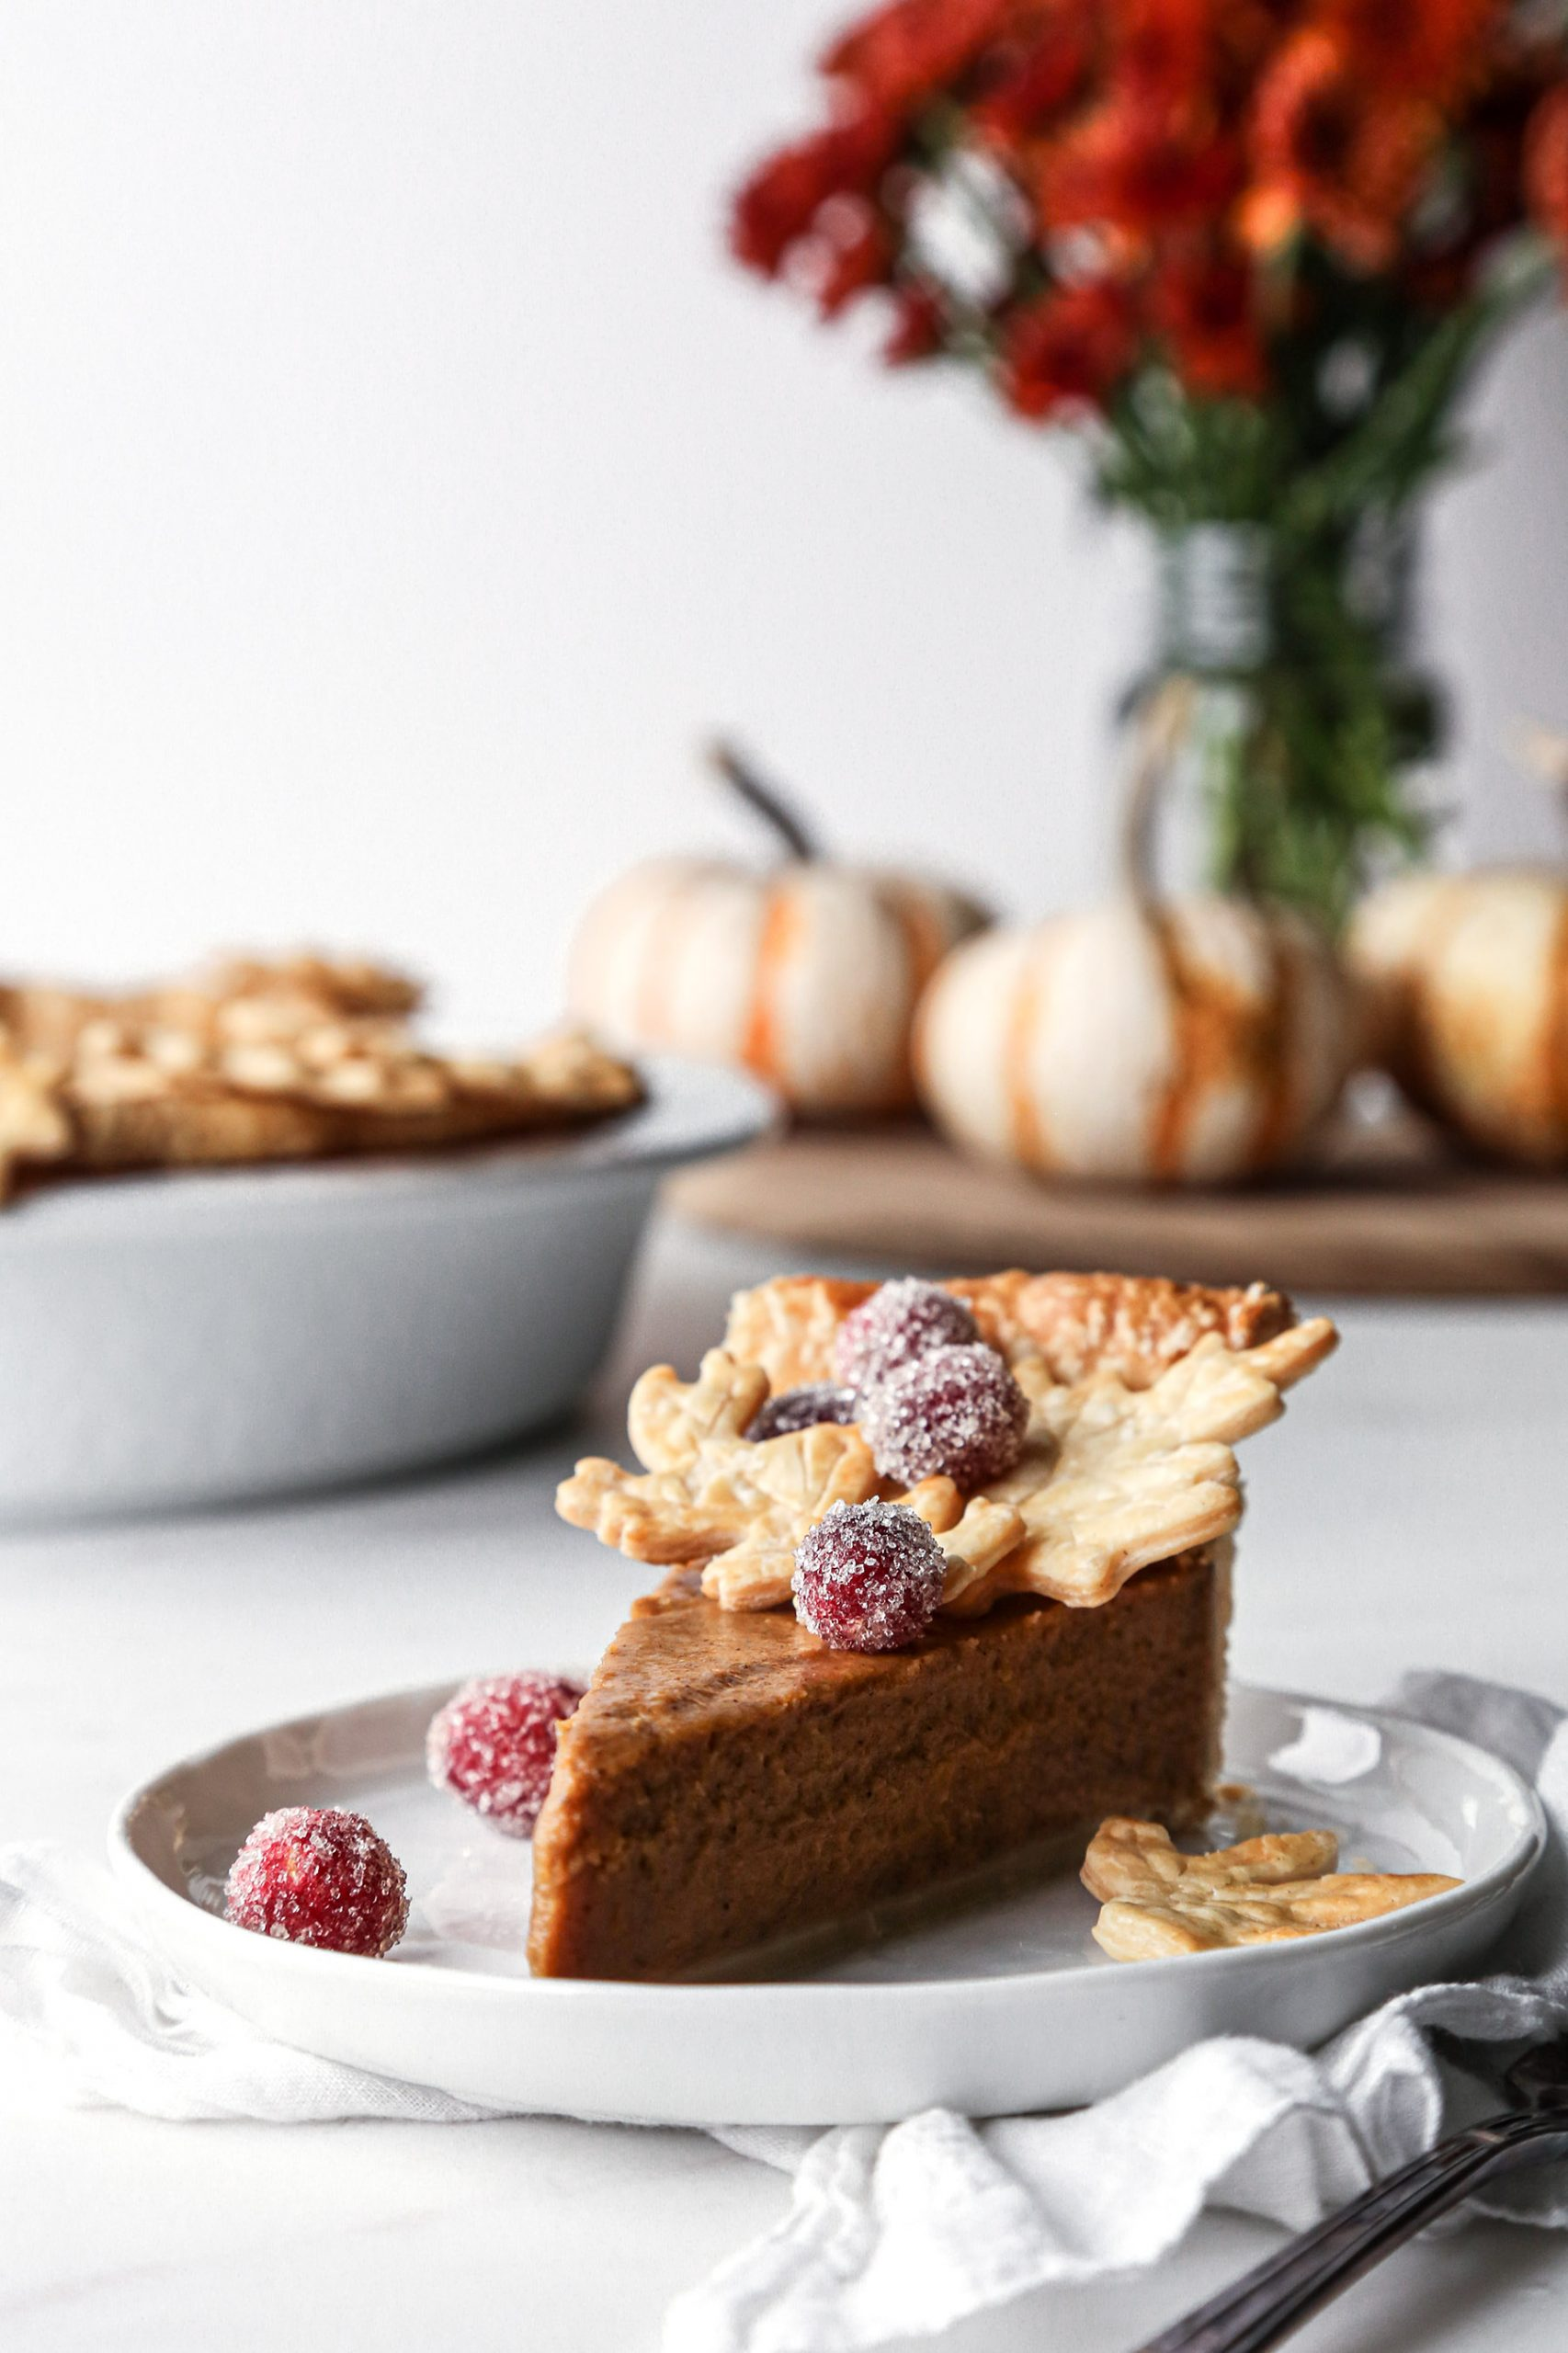 Vegan Pumpkin Pie | Free of dairy and refined sugar with gluten free option.